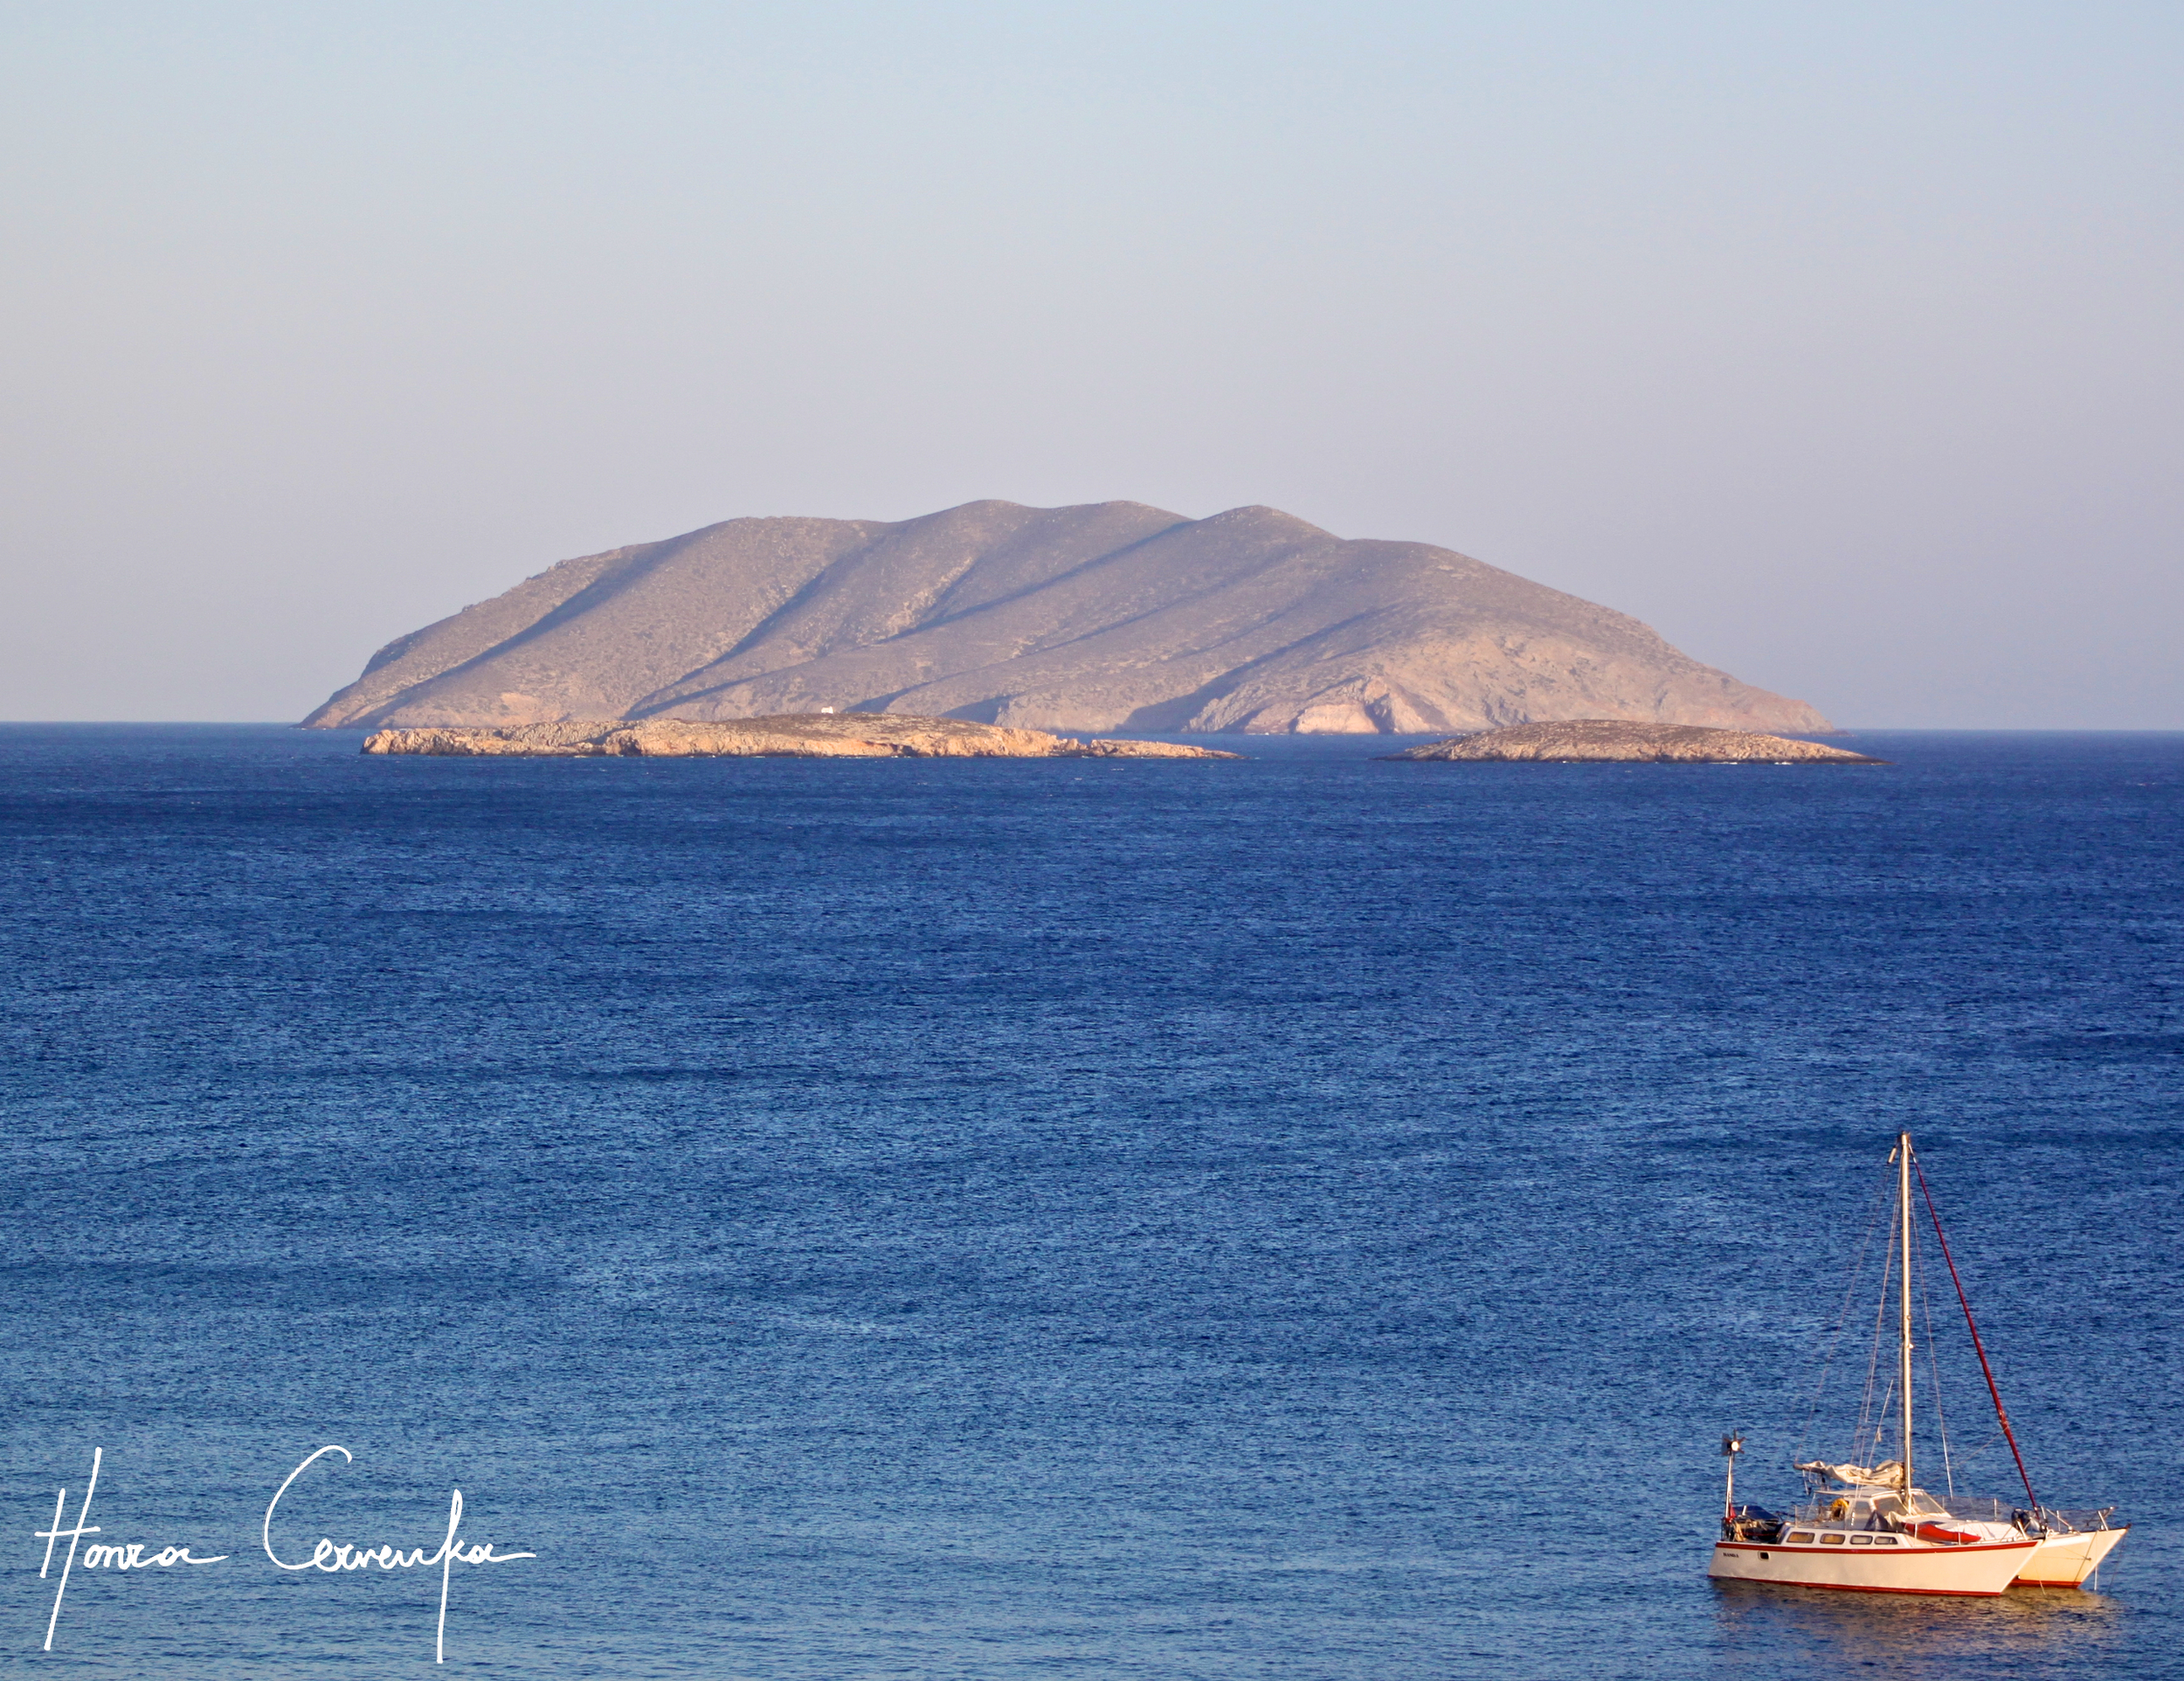 VIew of an islet off the coast of Anafi